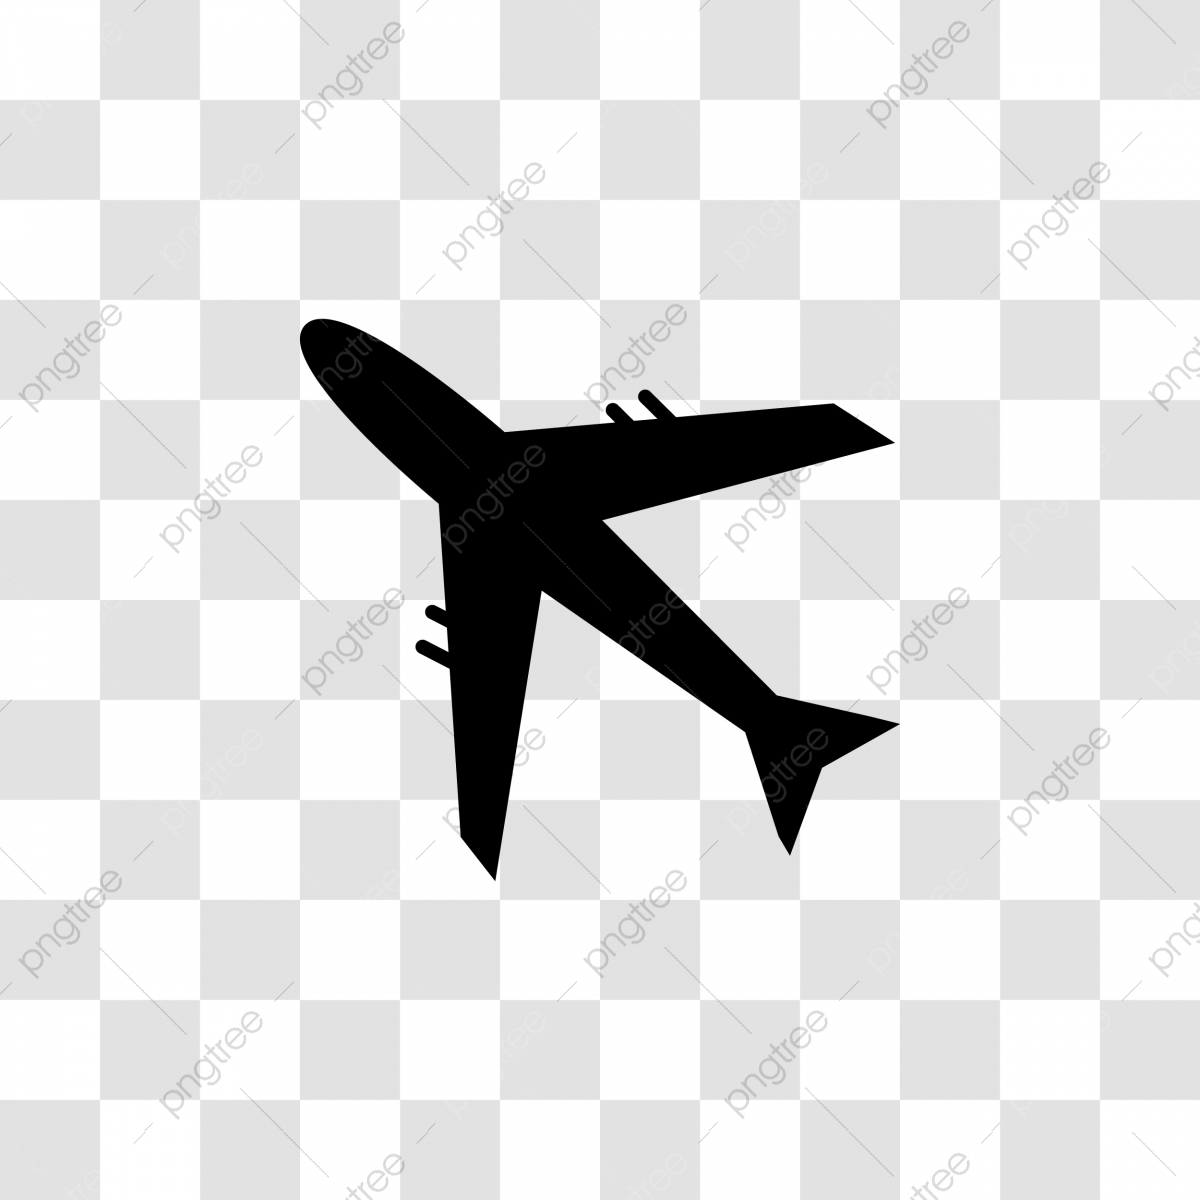 Plane Icon Isolated Plane Icons Plane Isolated Png And Vector